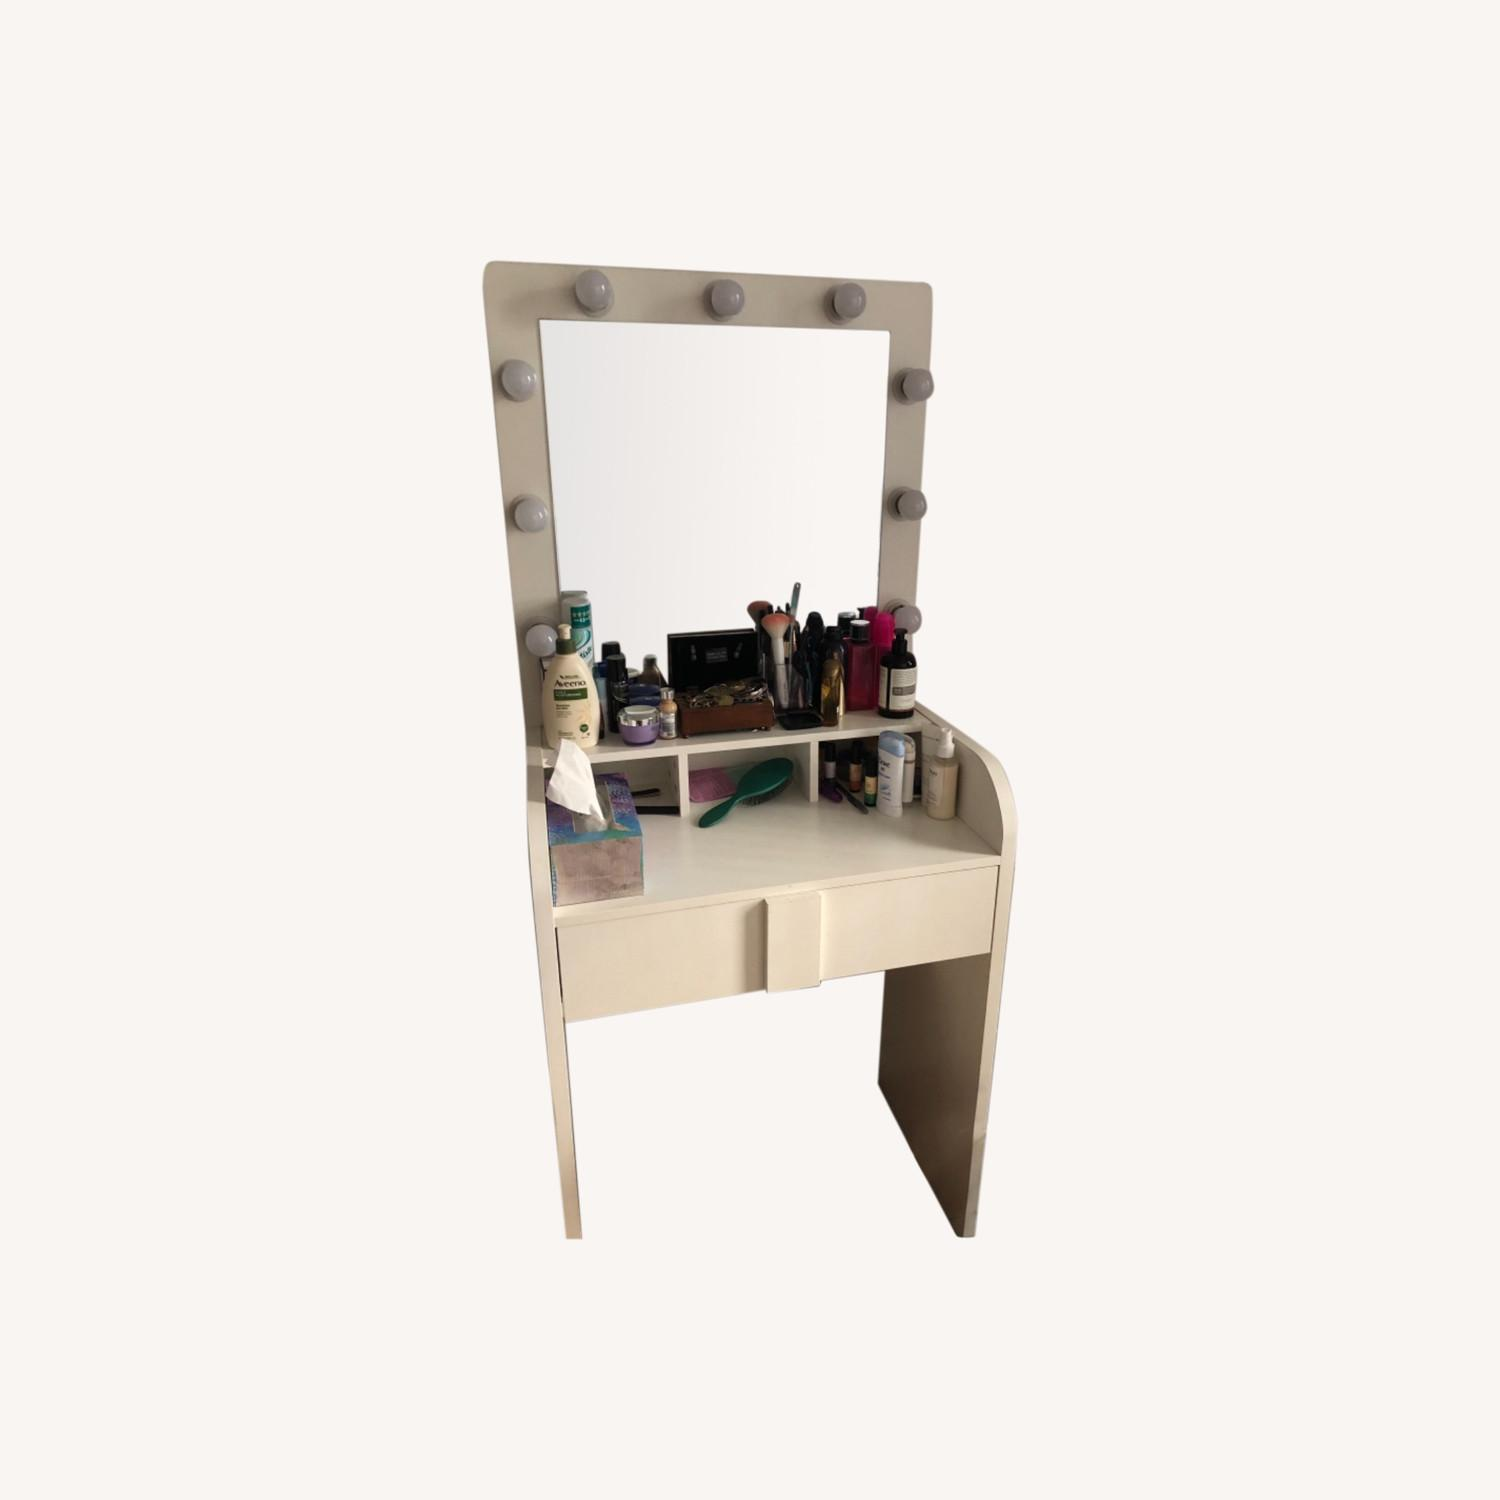 Wayfair Baldon Vanity Set with Mirror - image-0